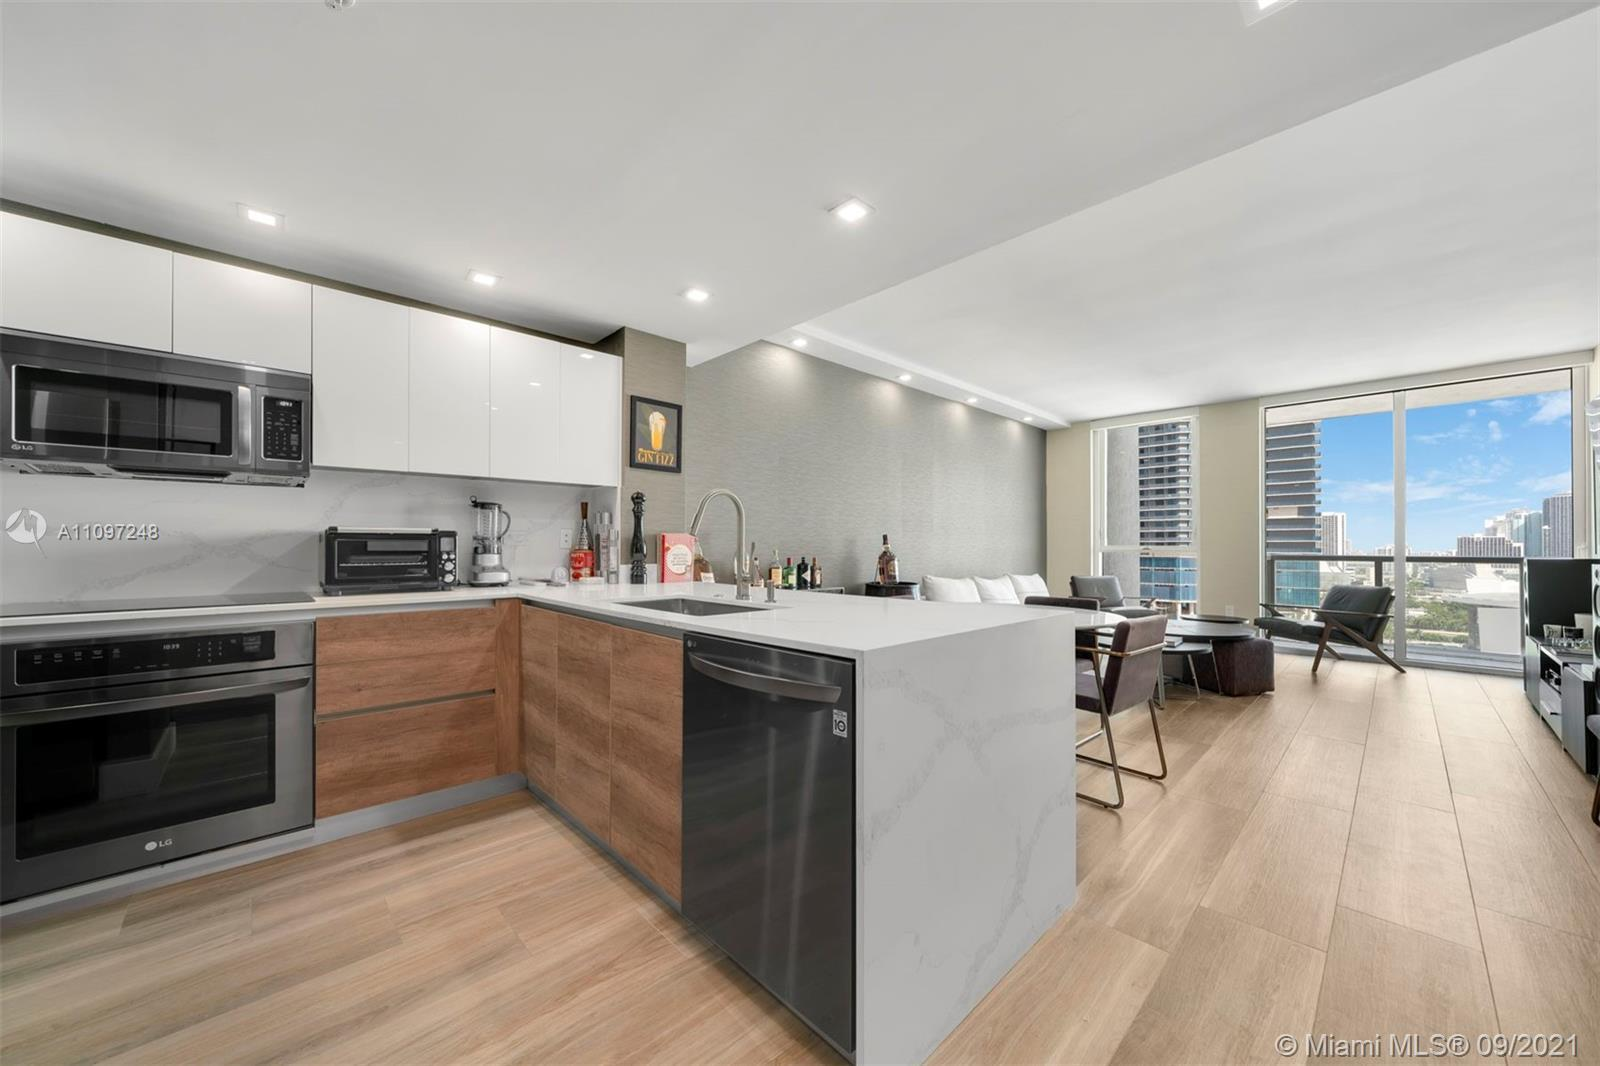 Turn-key apartment located in the heart of Downtown Miami. Fully renovated in 2021 with all new kitc